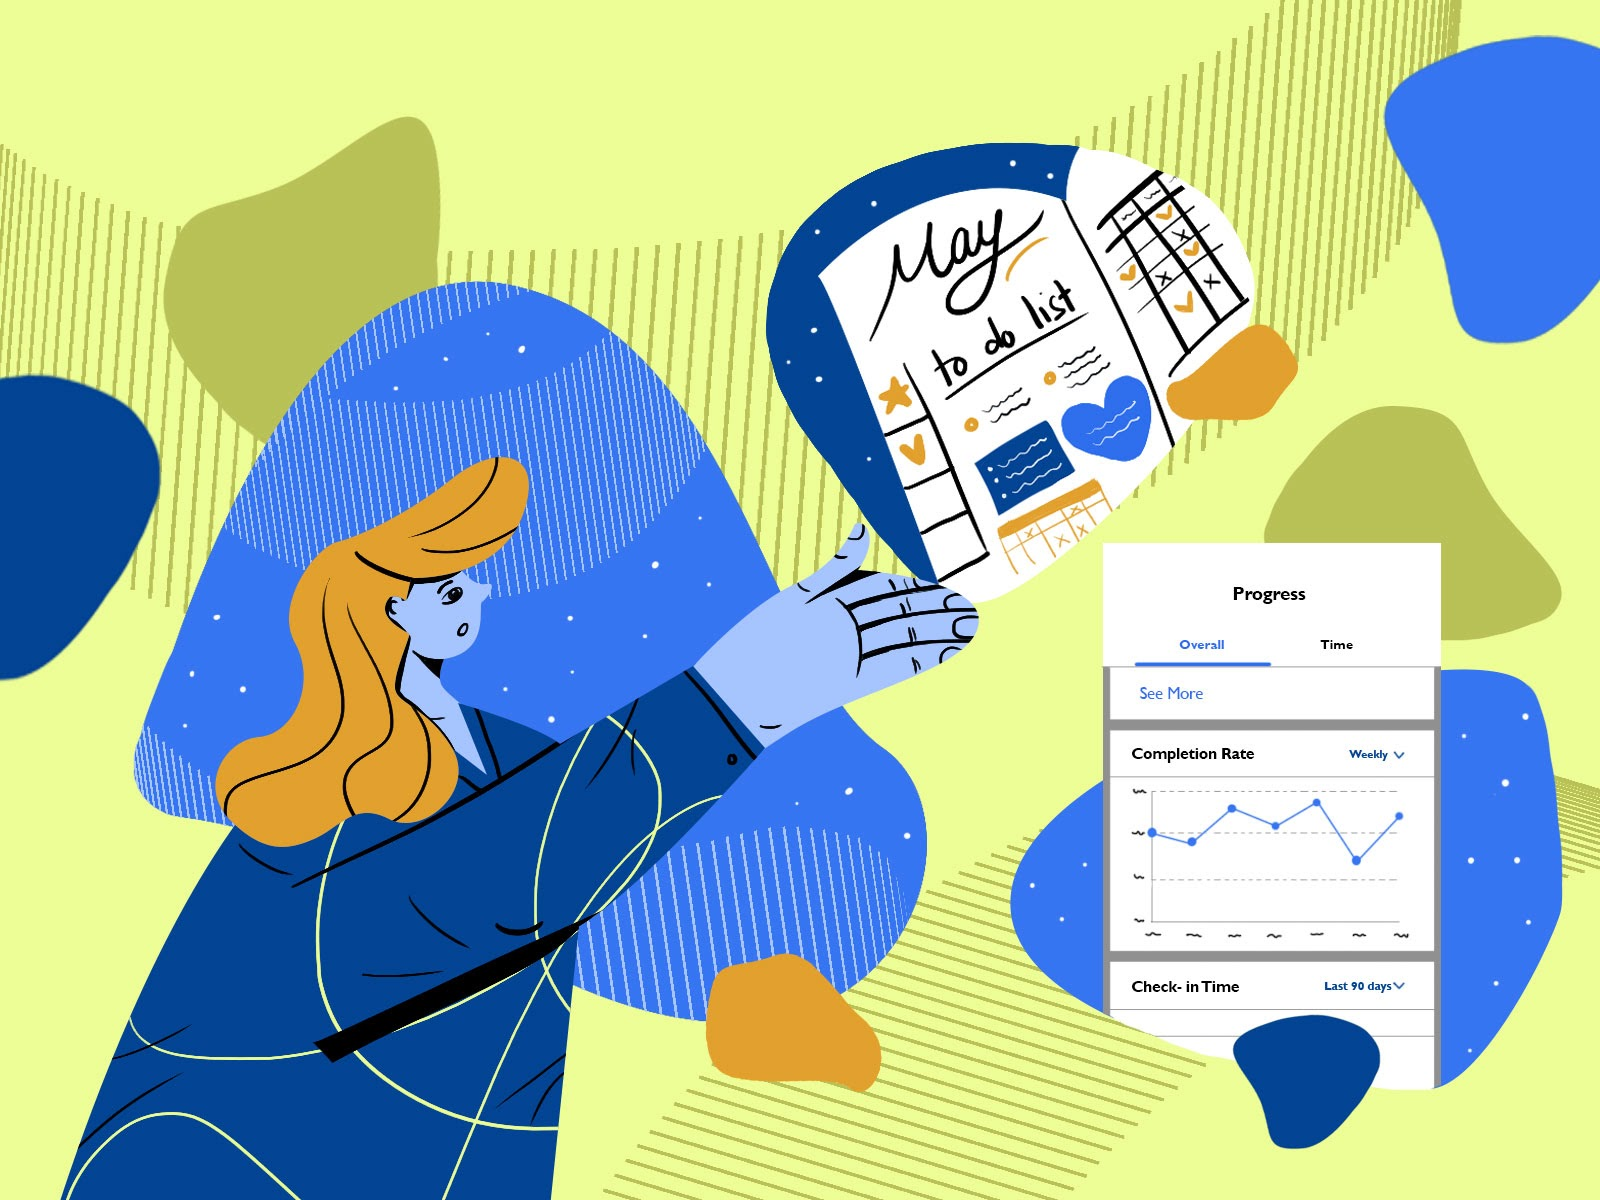 Habit tracking keeps you accountable and honest to what you do